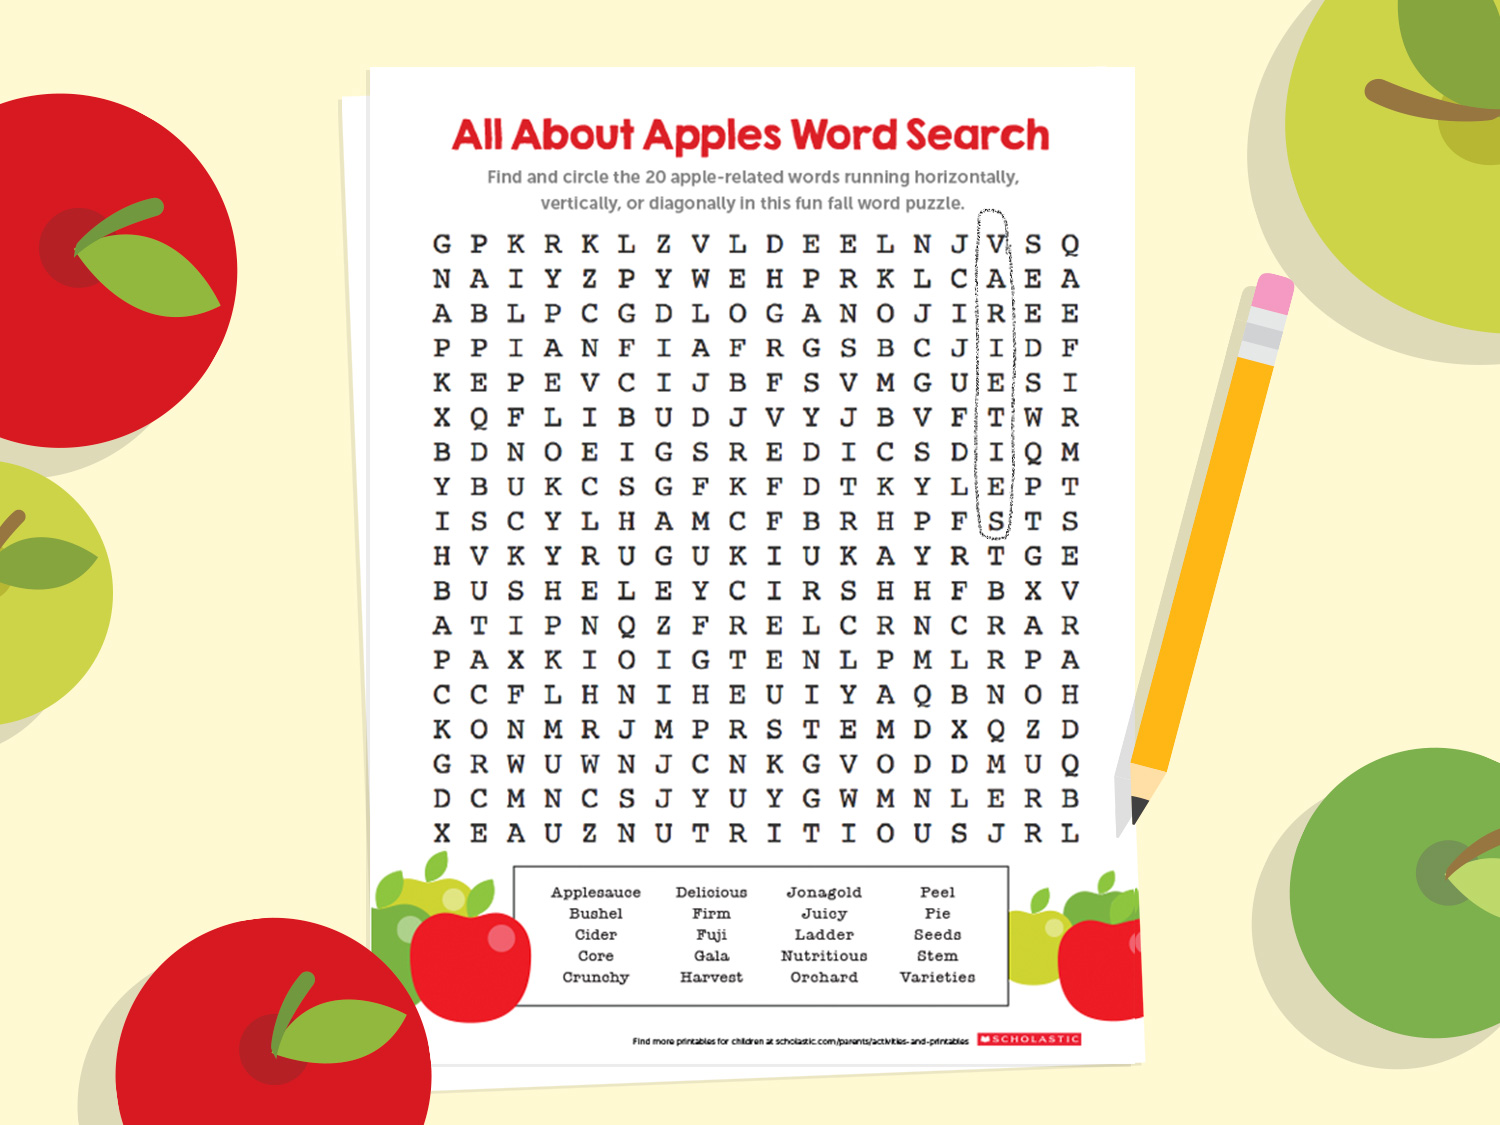 All About Apples Word Search Puzzle For Fall